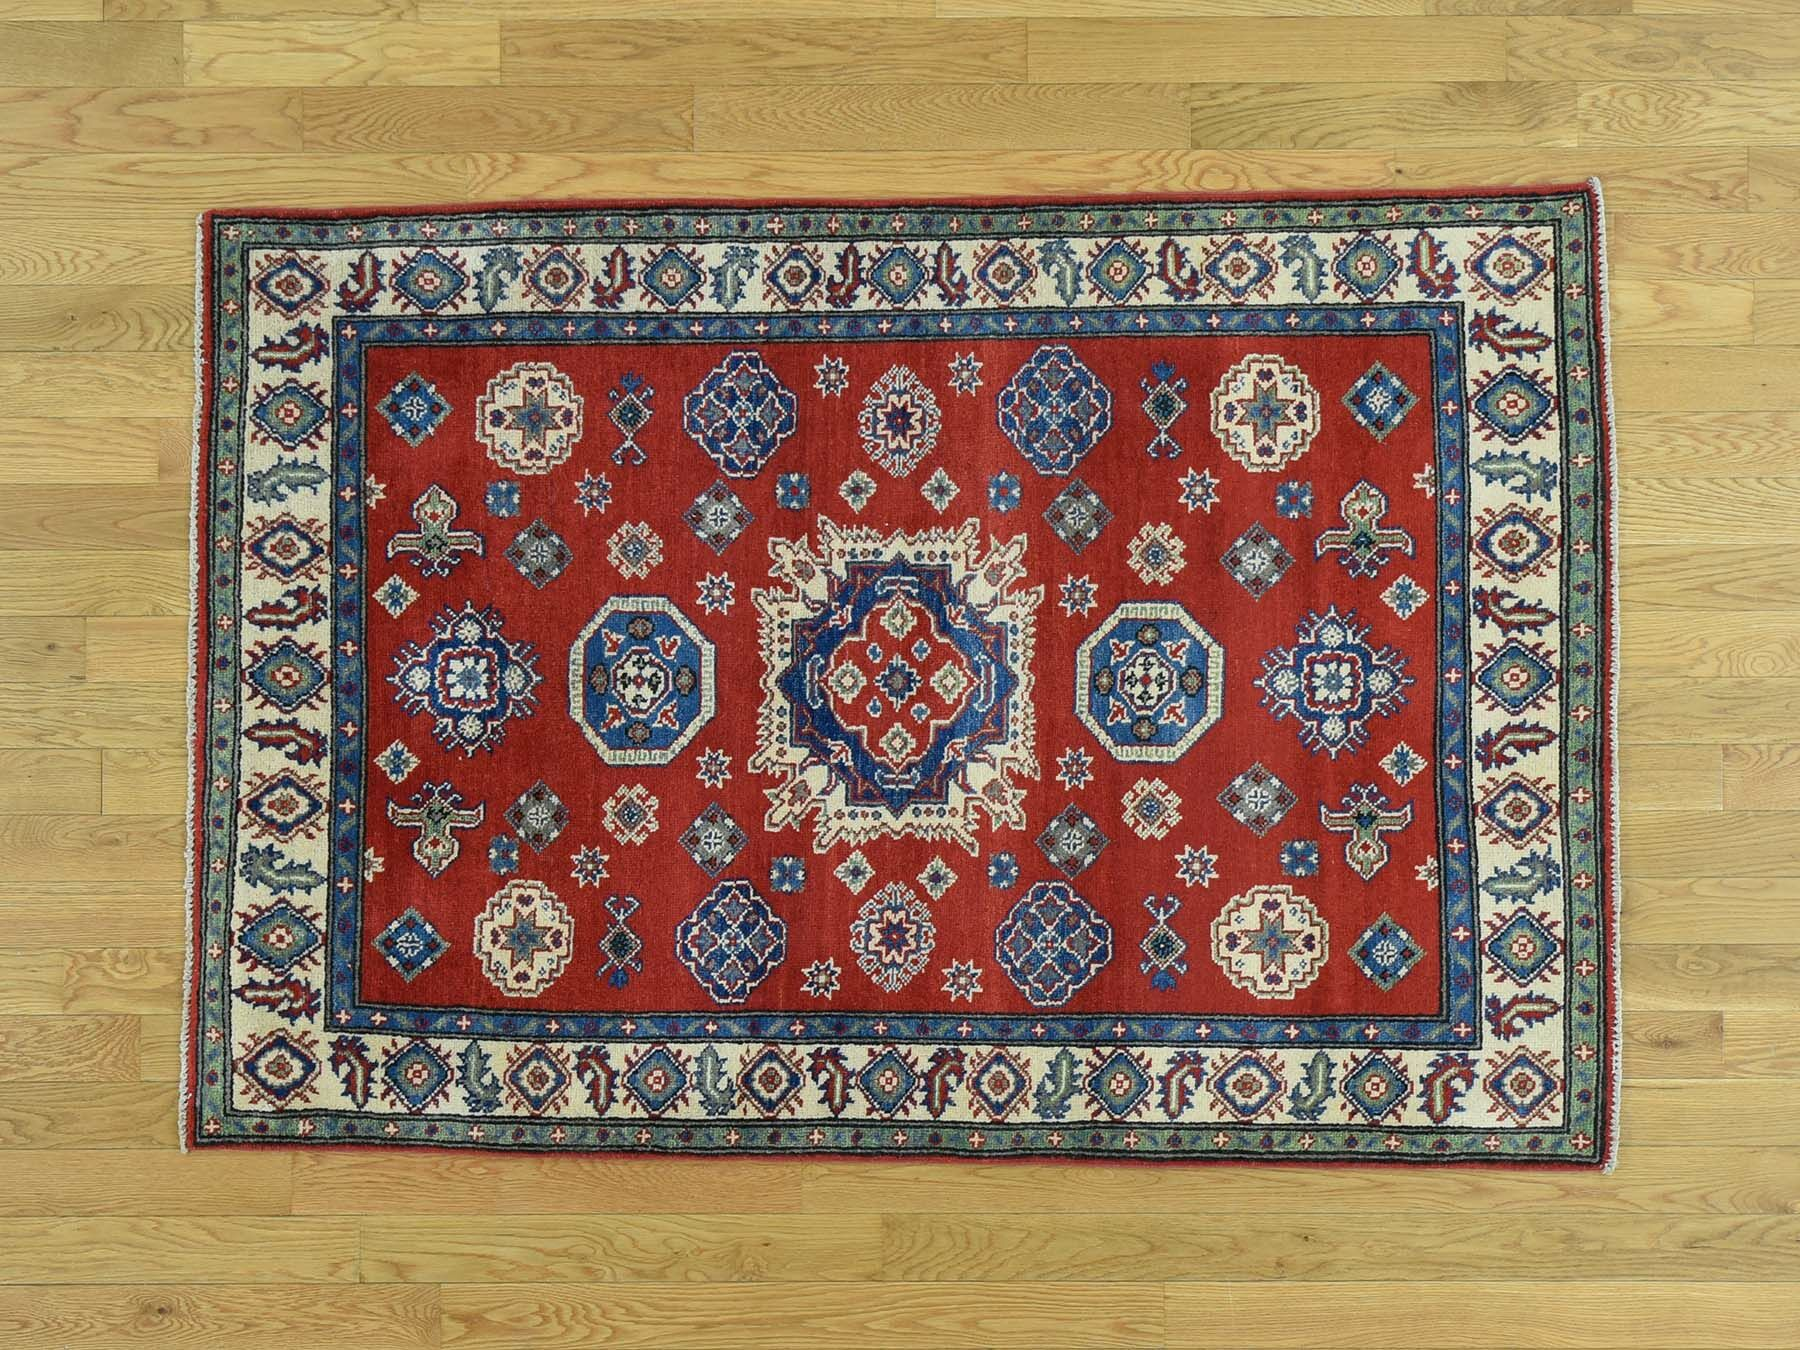 One-of-a-Kind Boughner Kazak Geometric Design Hand-Knotted Red Wool Area Rug